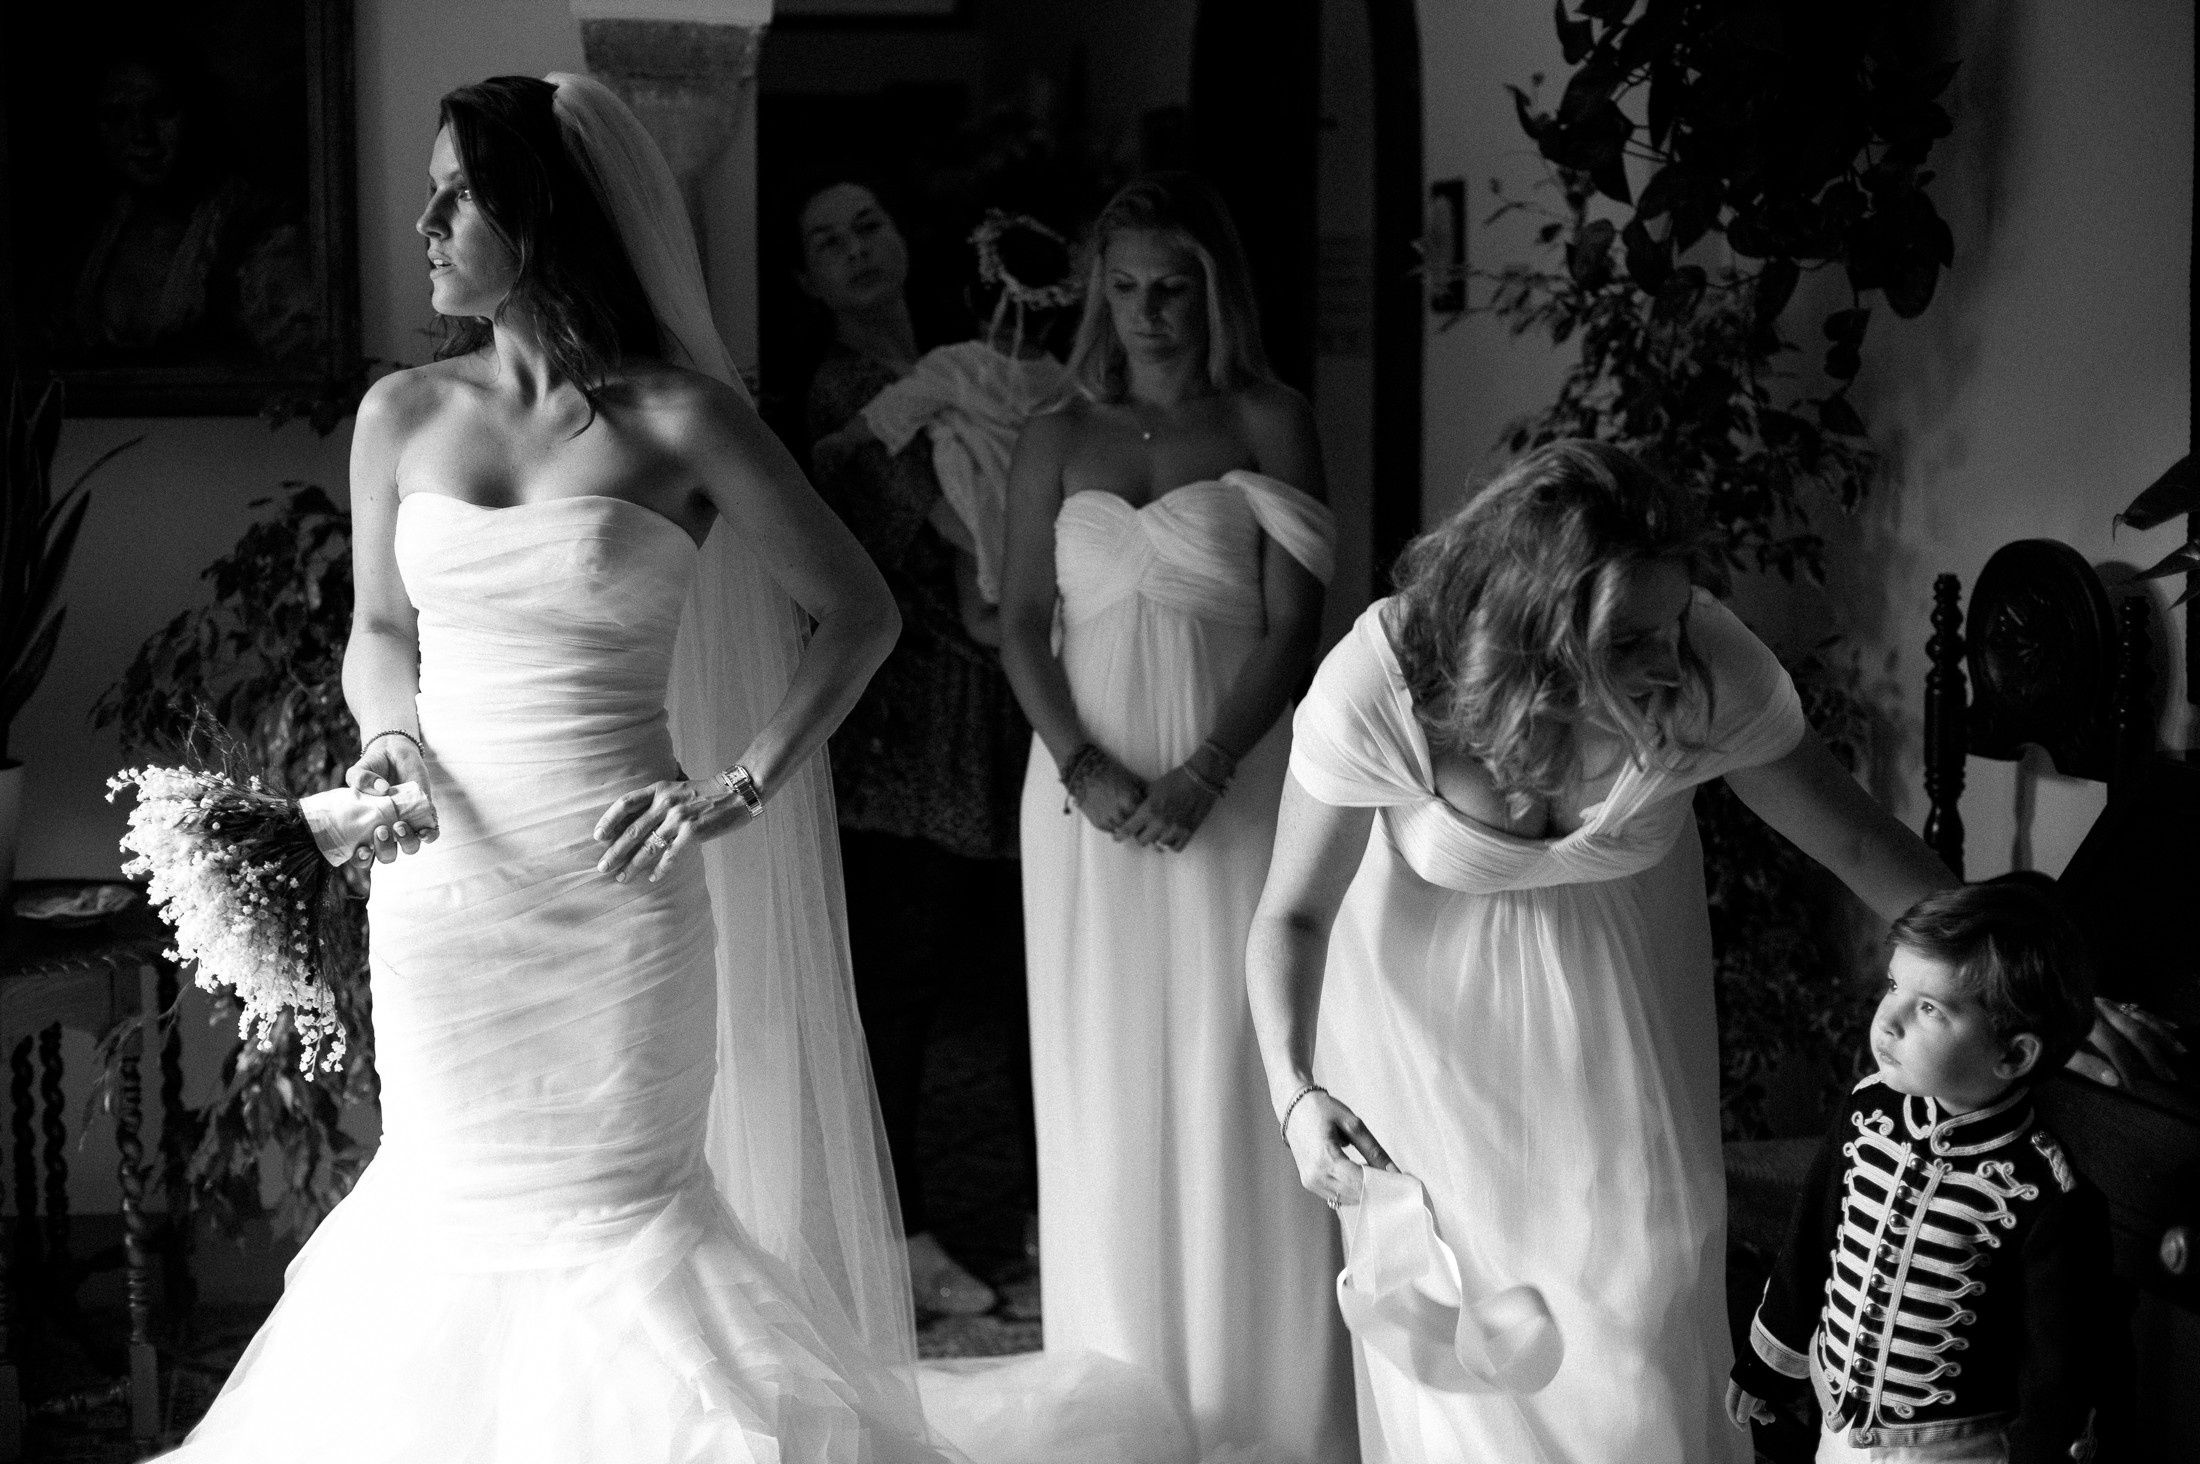 the bride and her bridesmaids before leaving the hotel room